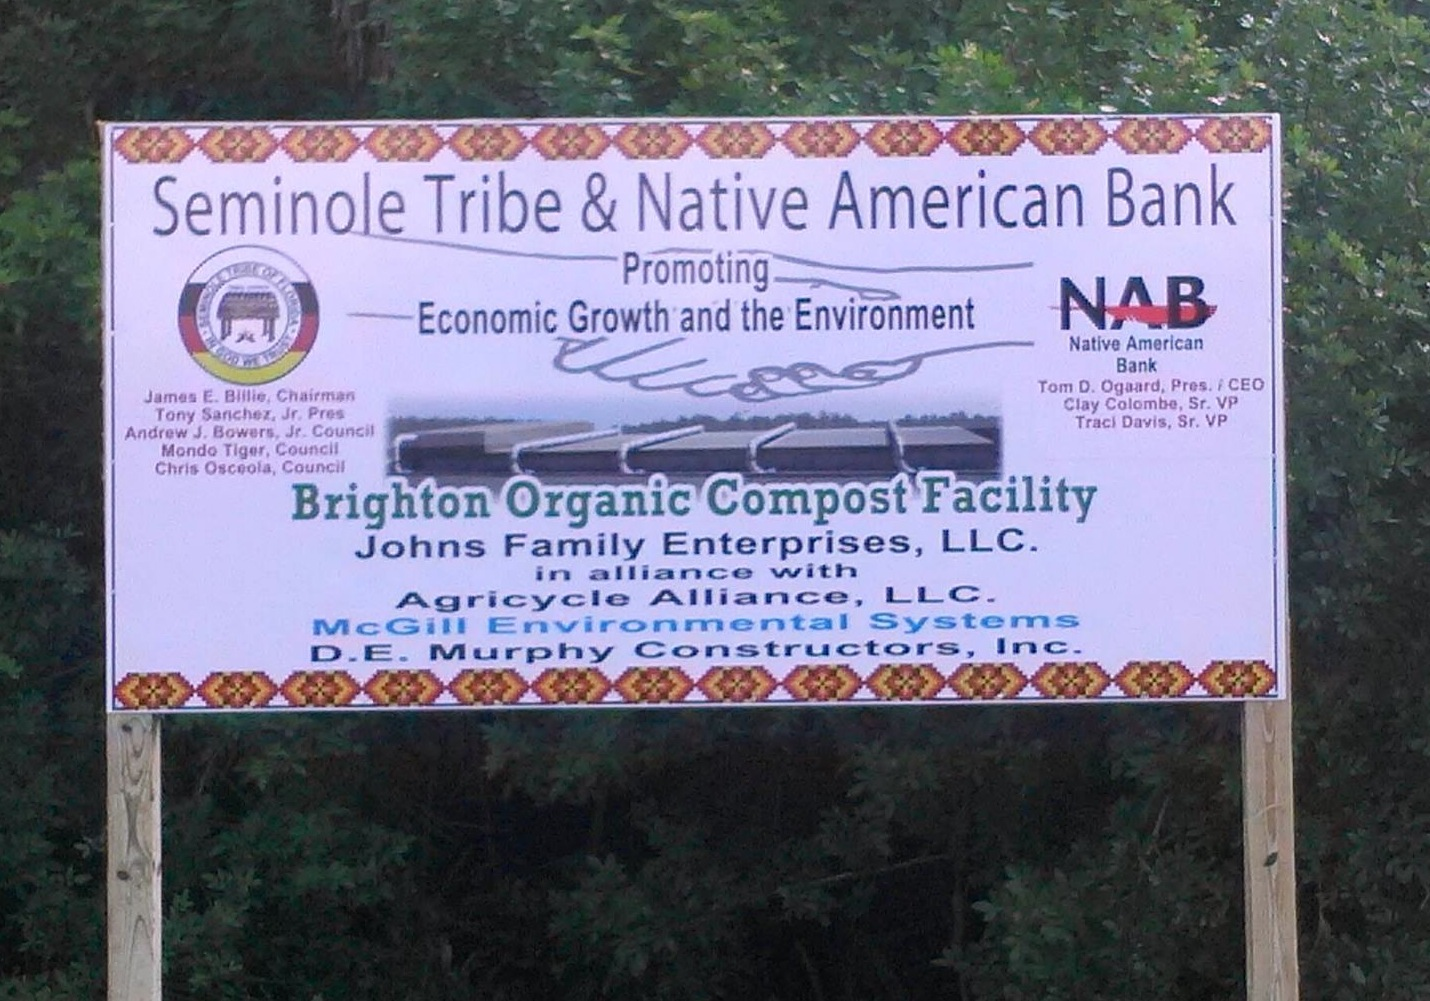 Winnebago Tribe's corporation invests in Native American Bank